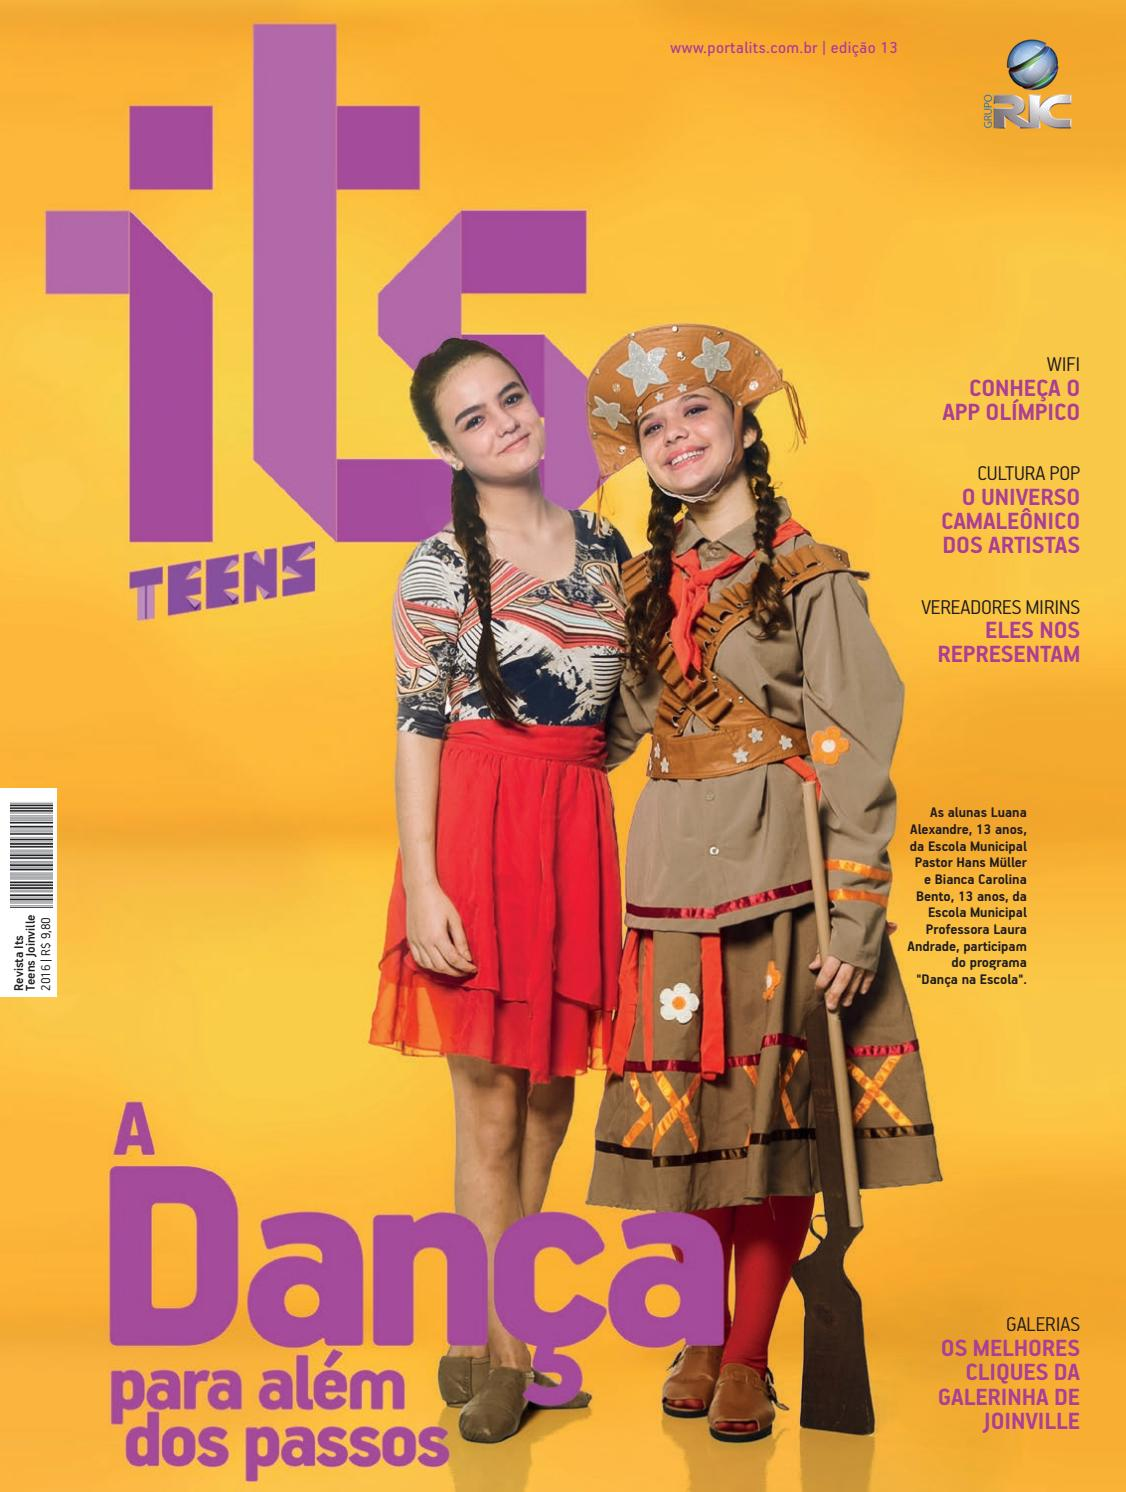 ba1be6a7b2 Its Teens - Joinville 13 by Revista its - issuu